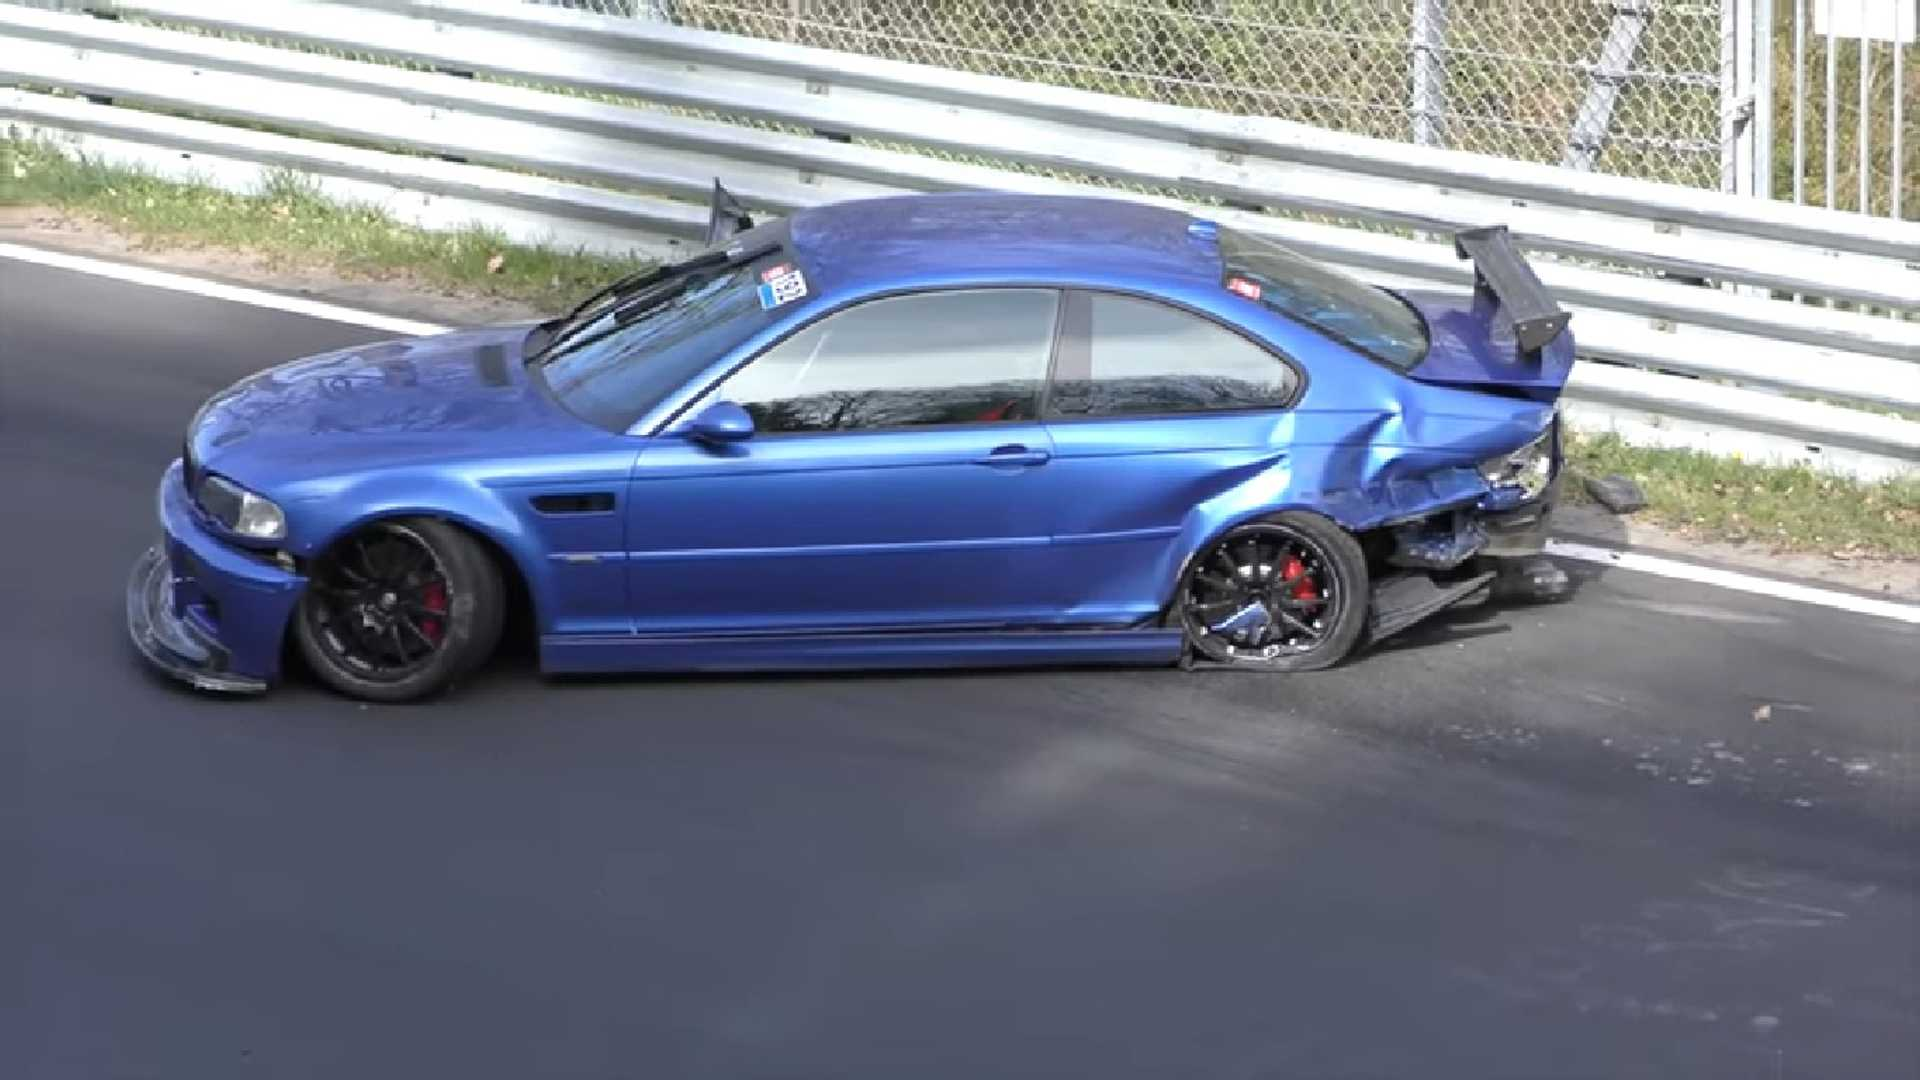 BMW E46 M3 >> Bmw E46 M3 Crashes Hard On The Nurburgring